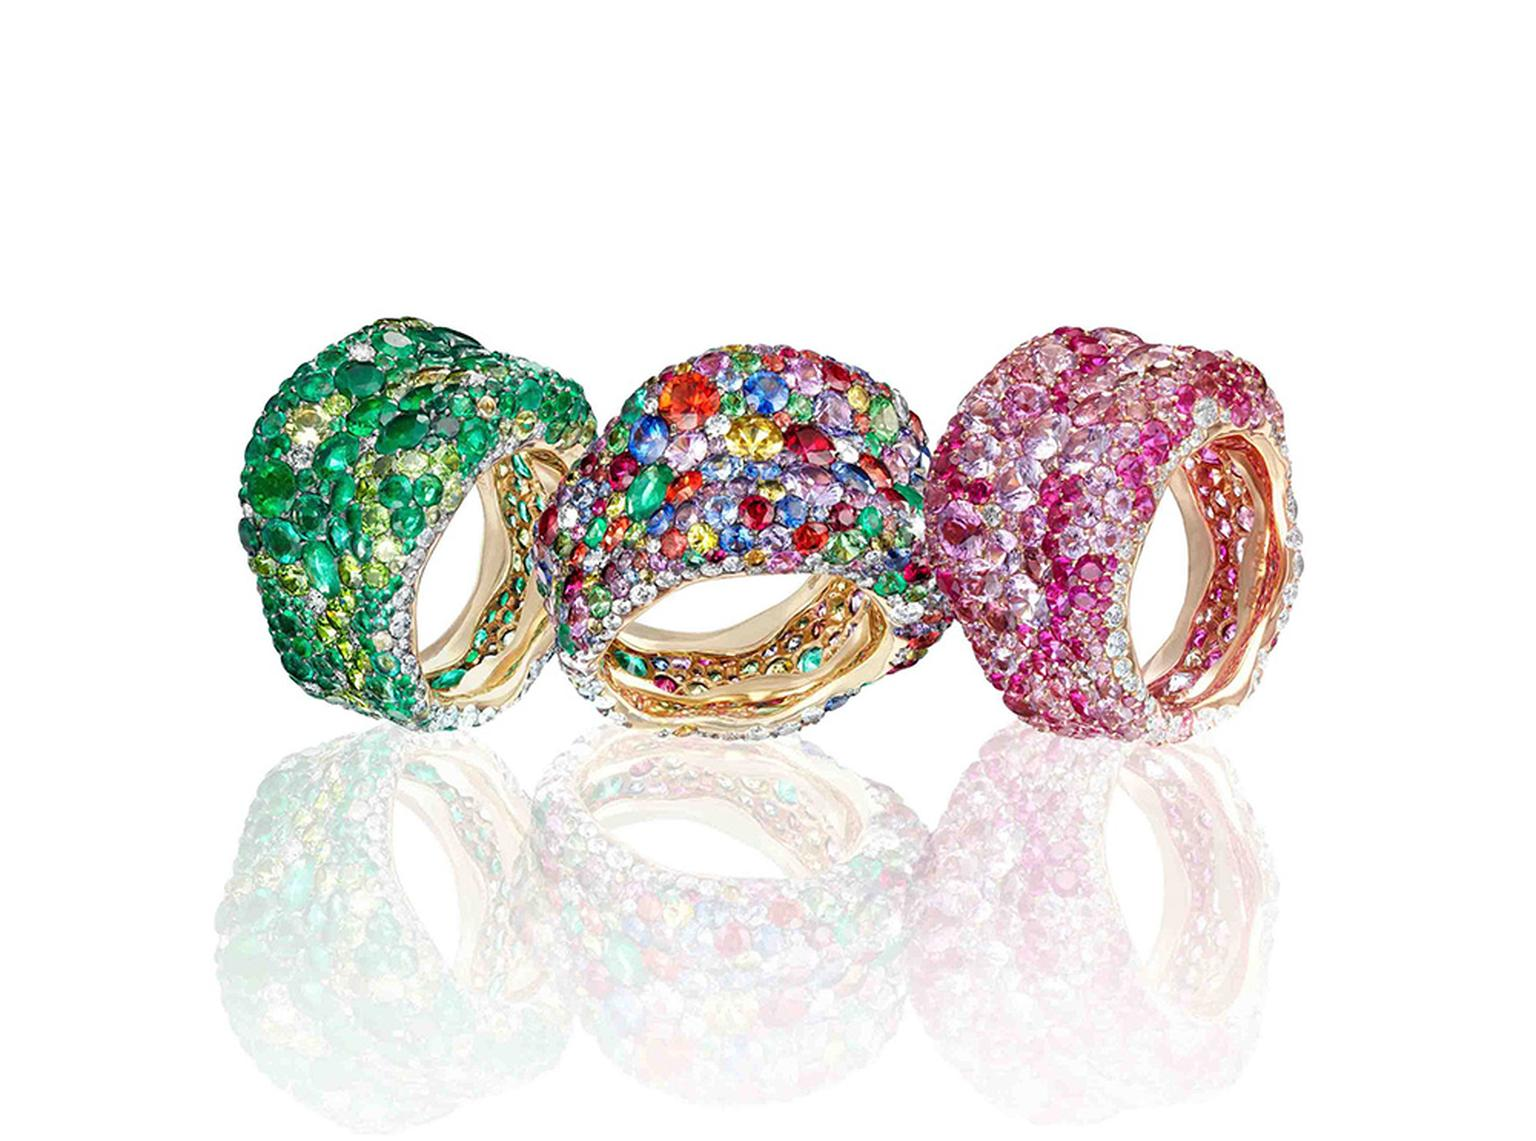 FabergeEmotionRings.jpg